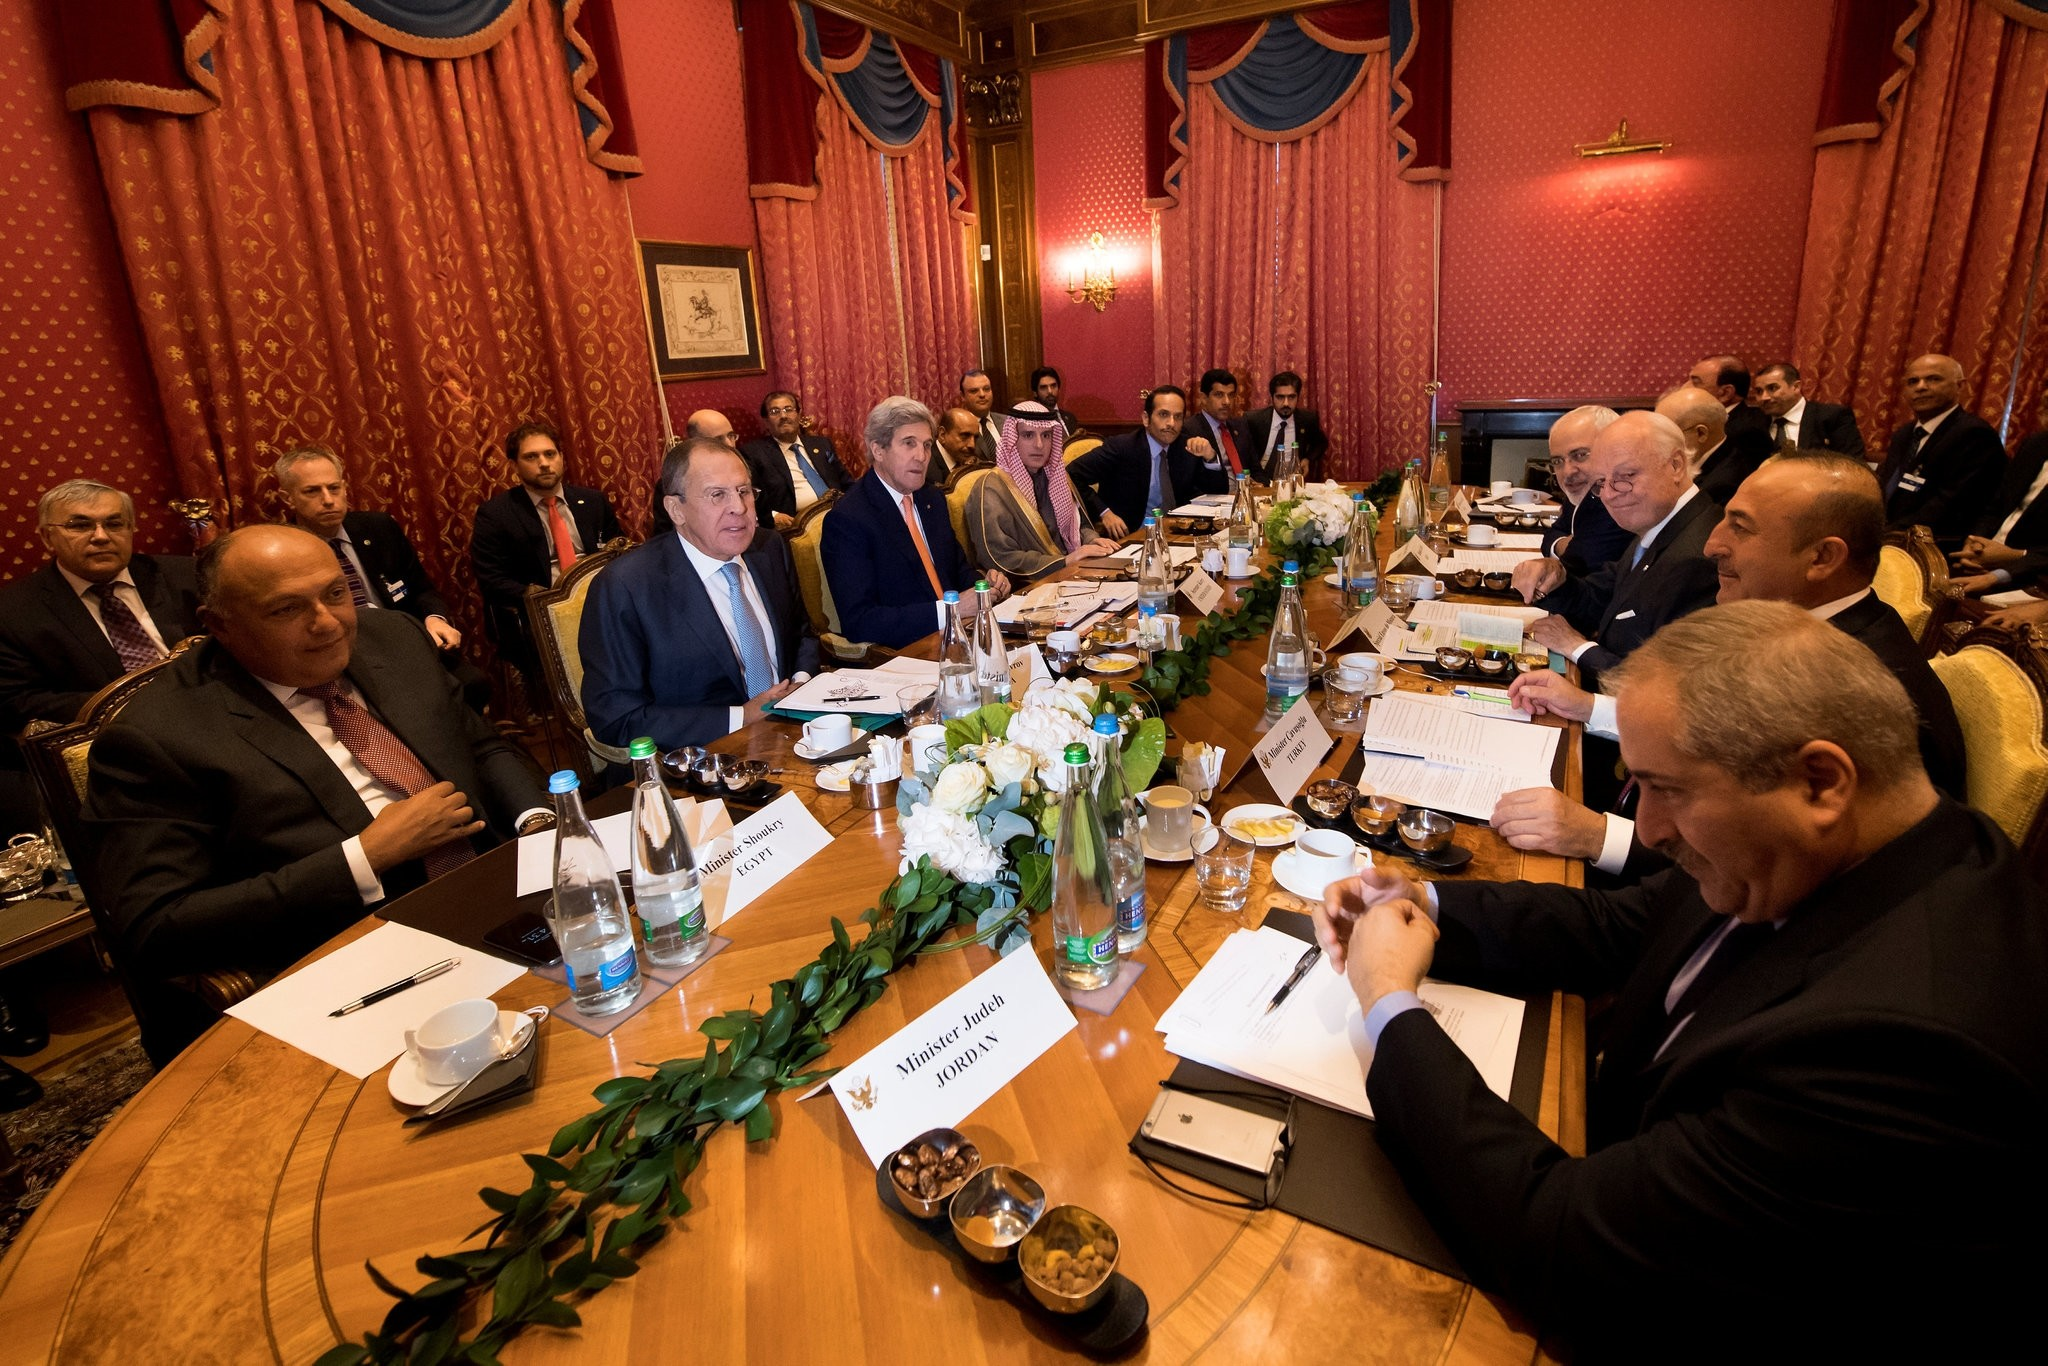 Foreign ministers of nine countries speak together around a table during a bilateral meeting where they discussed the crisis in Syria, in Lausanne, Switzerland. (REUTERS Photo)